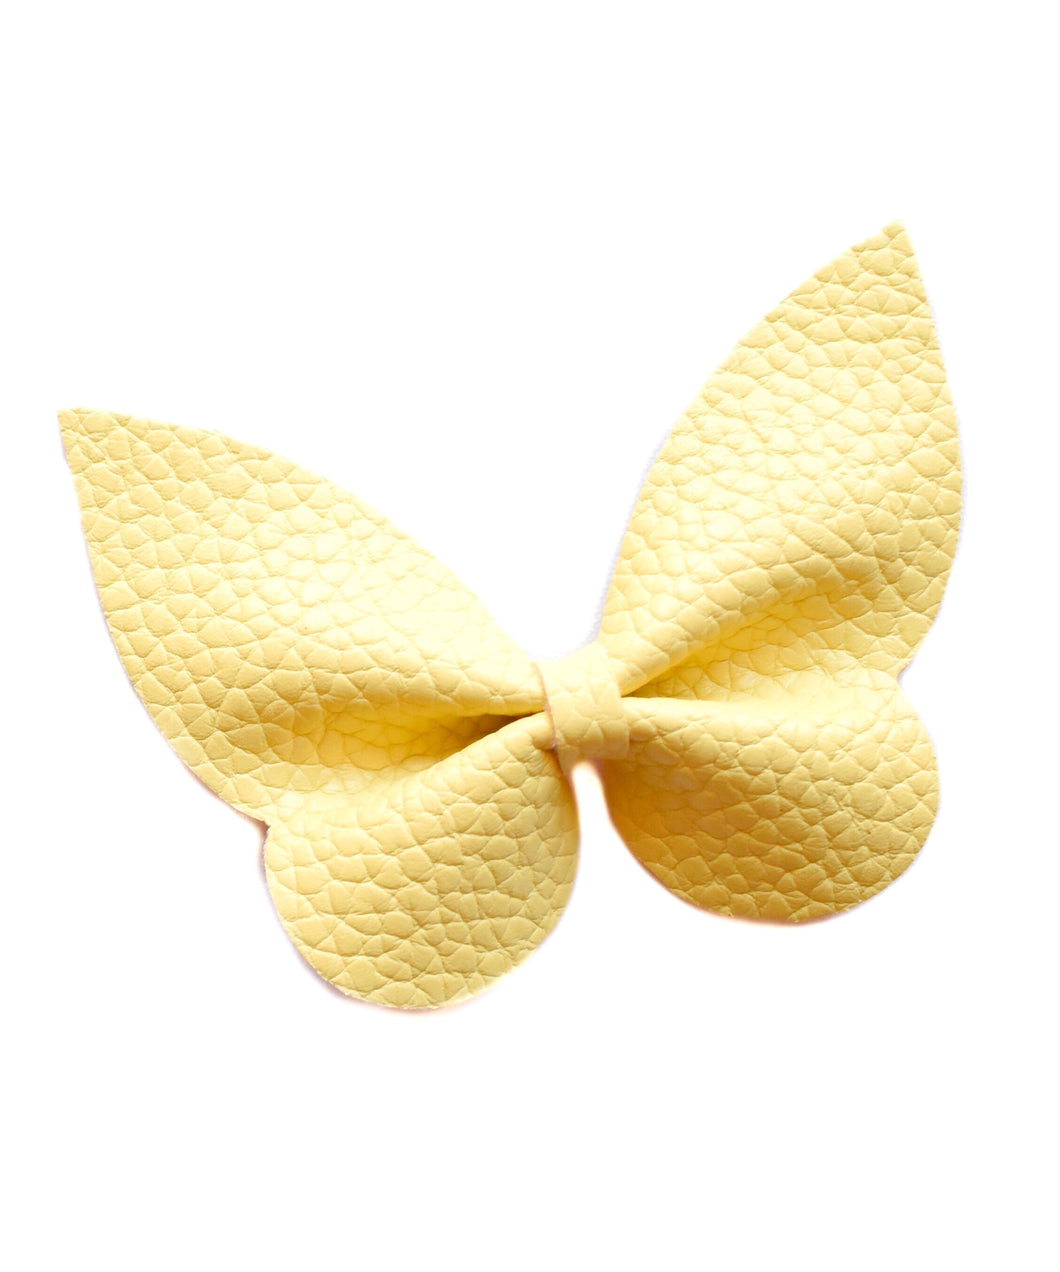 Holly- Yellow glitter bow, leatherette bow, fringe clip, butterfly bow, personalised bow, rainbow bow, dolly hair bow, floral bow, shimmer bow, pretty bow , Bow Handmade Hairbow, handmade hair accessories, Sweet Adalyn Sweet Adalyn